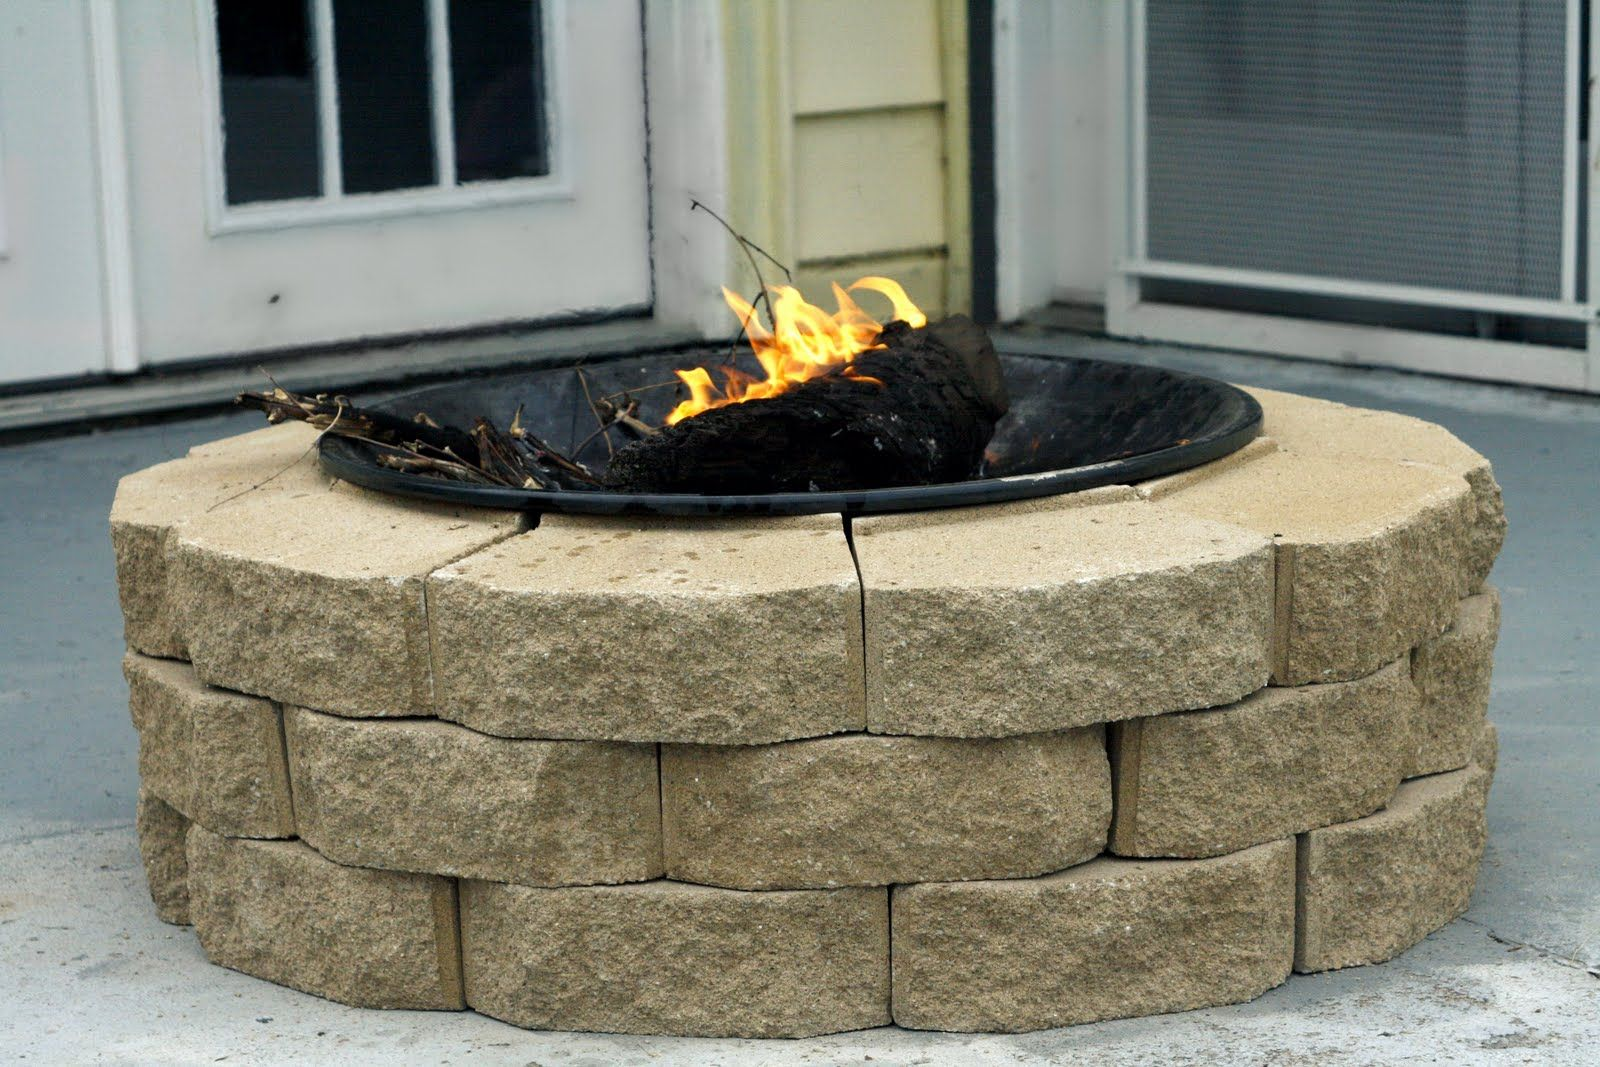 Video build a fire pit in about an hour outdoor fire diy fire video build a fire pit in about an hour outdoor fire diy fire pit and create solutioingenieria Choice Image